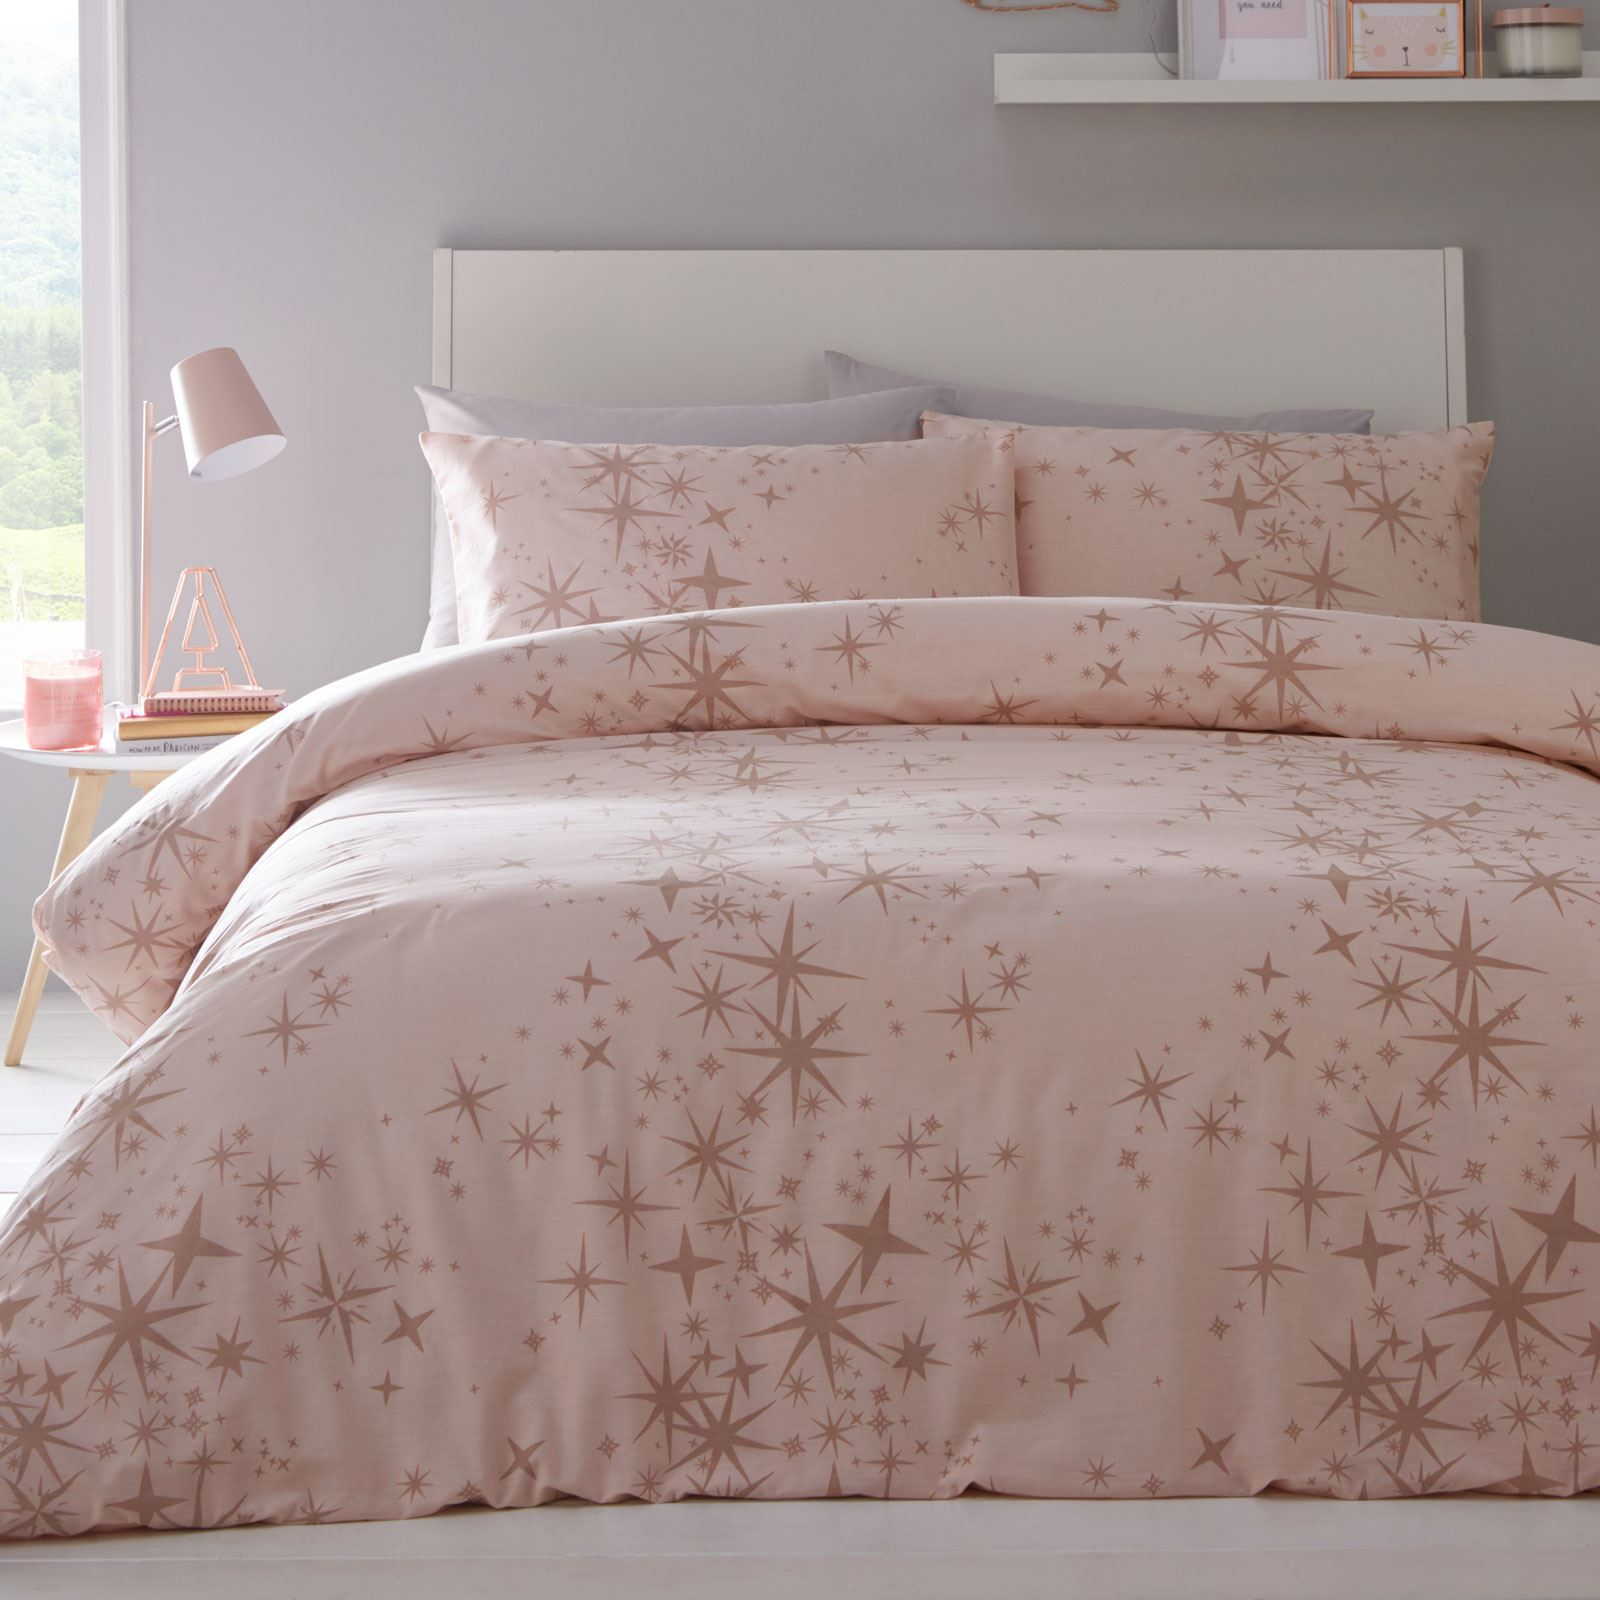 Details About Rose Gold Glitter Stars Double Duvet Cover Set Pink Girls Bedding